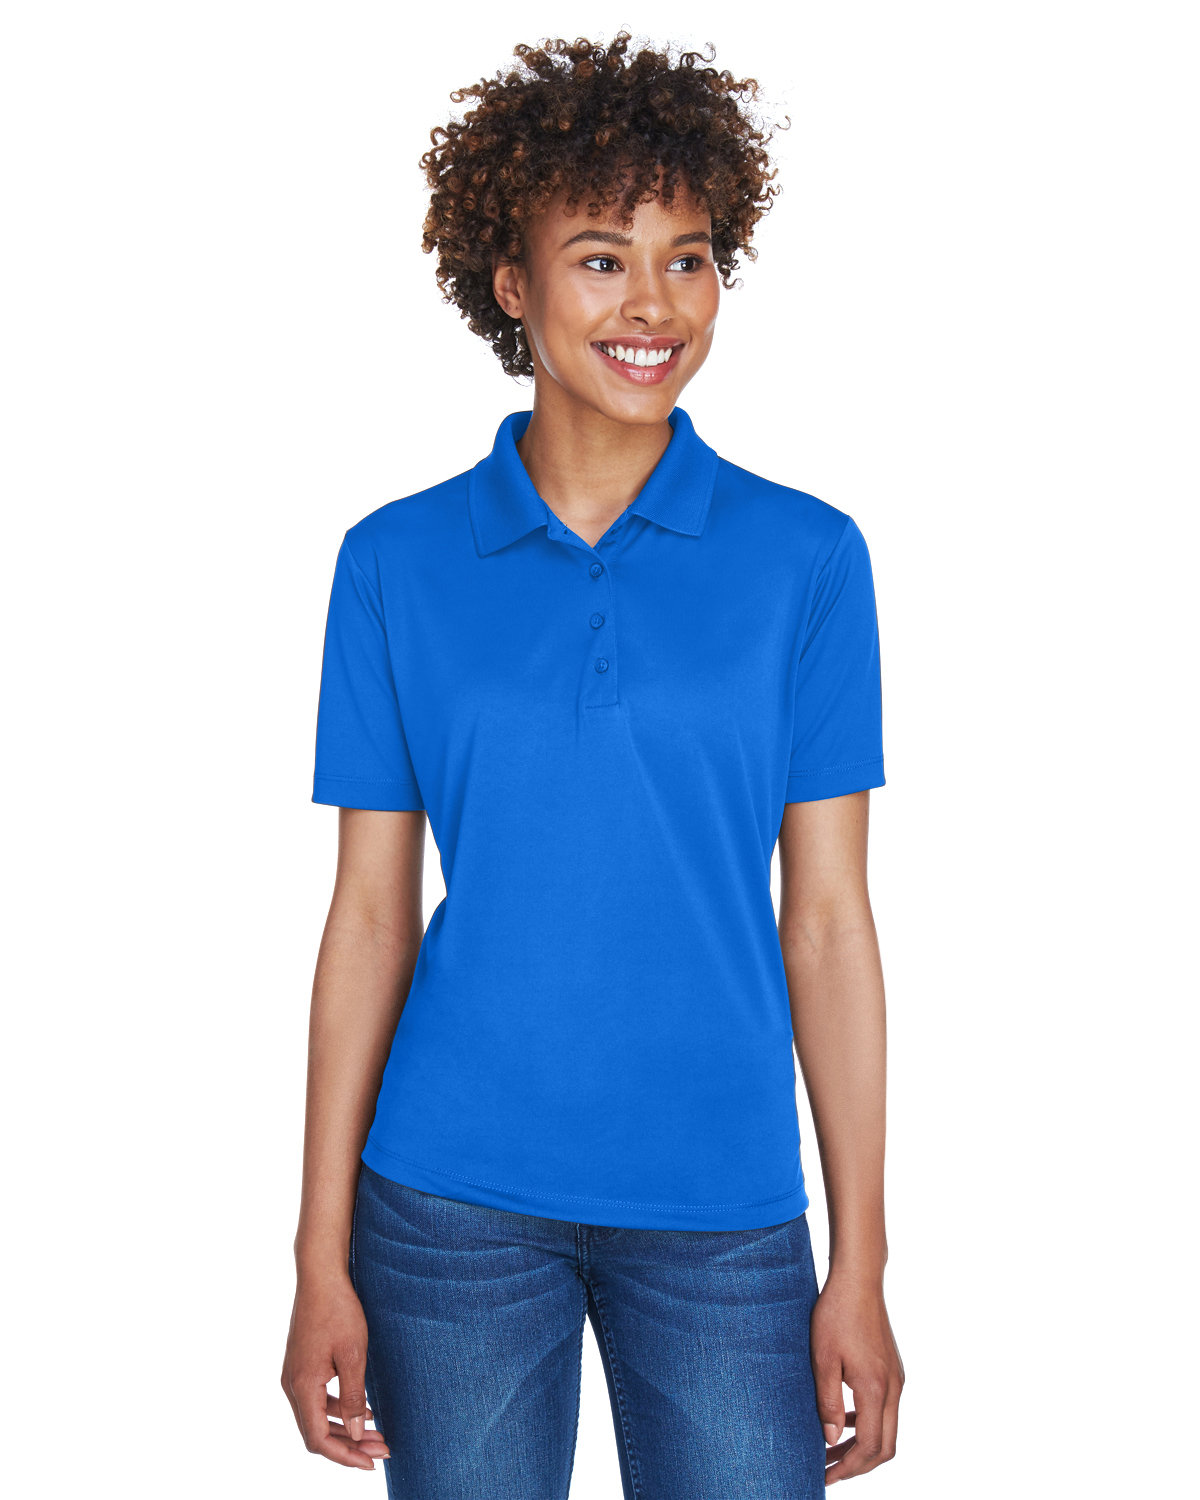 UltraClub Ladies' Cool & Dry 8-Star Elite Performance Interlock Polo ROYAL